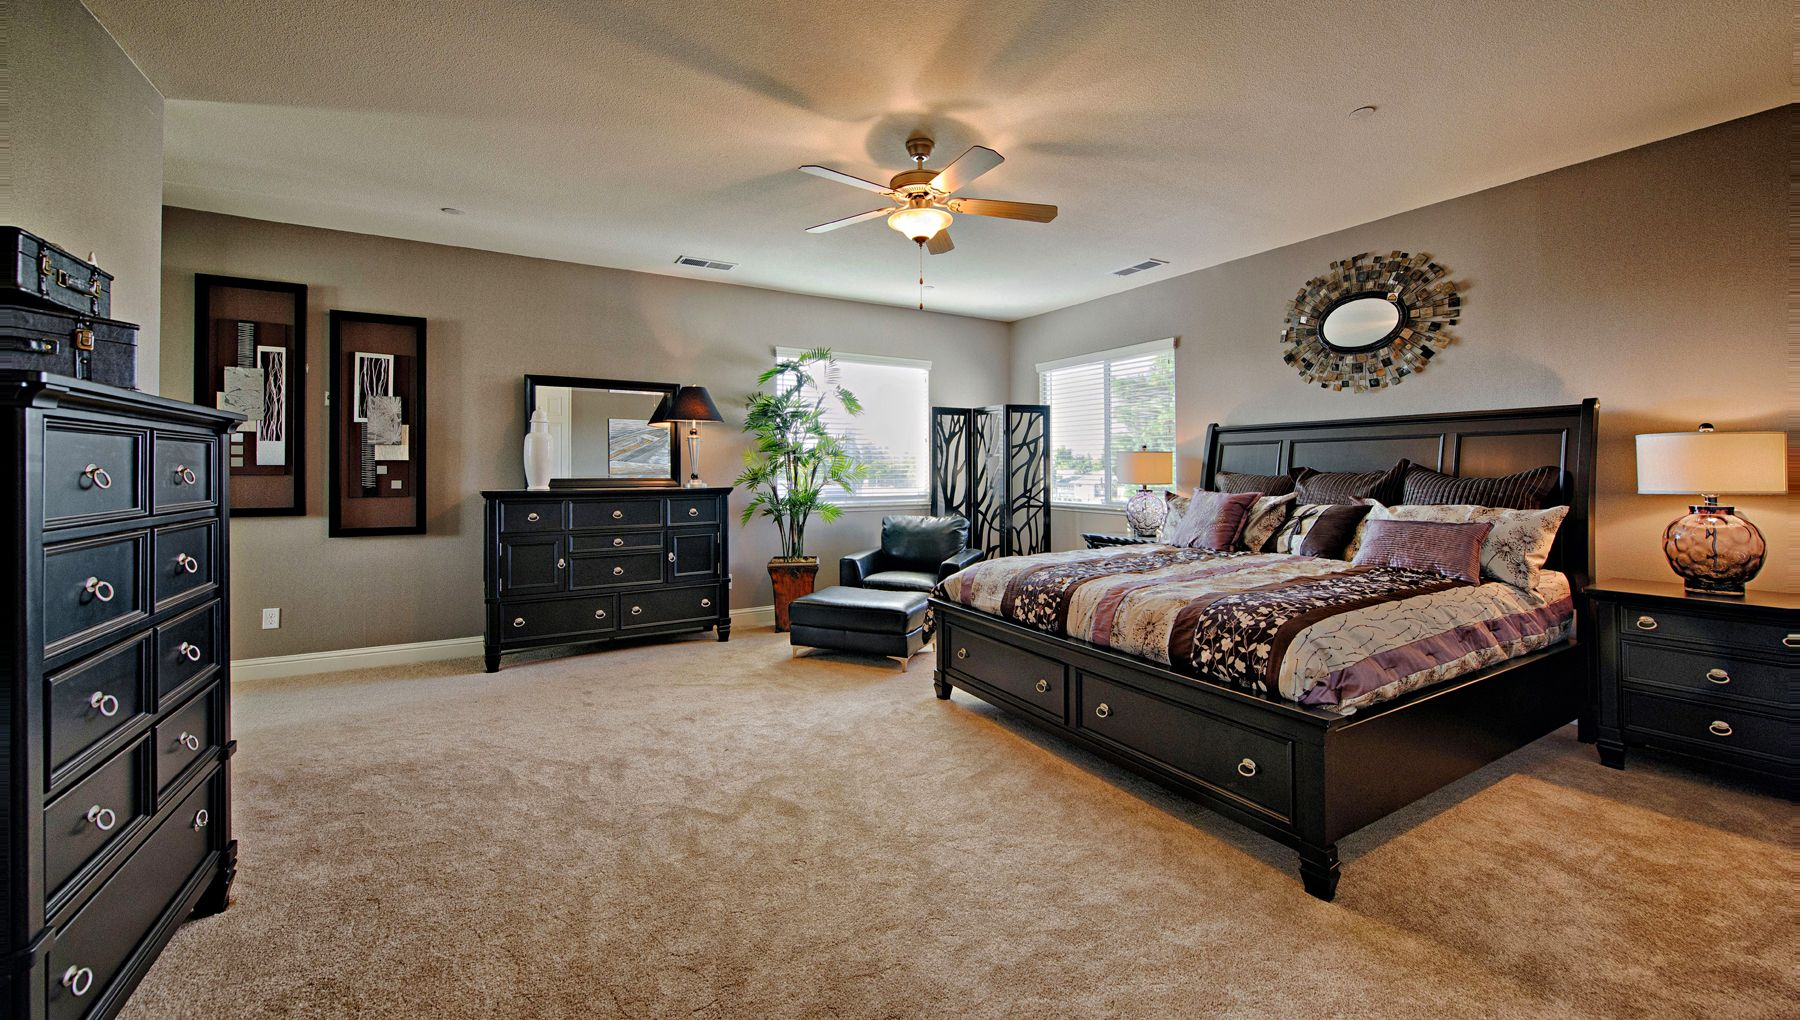 Dream master bedrooms dream master bedroom cool for House and home bedrooms